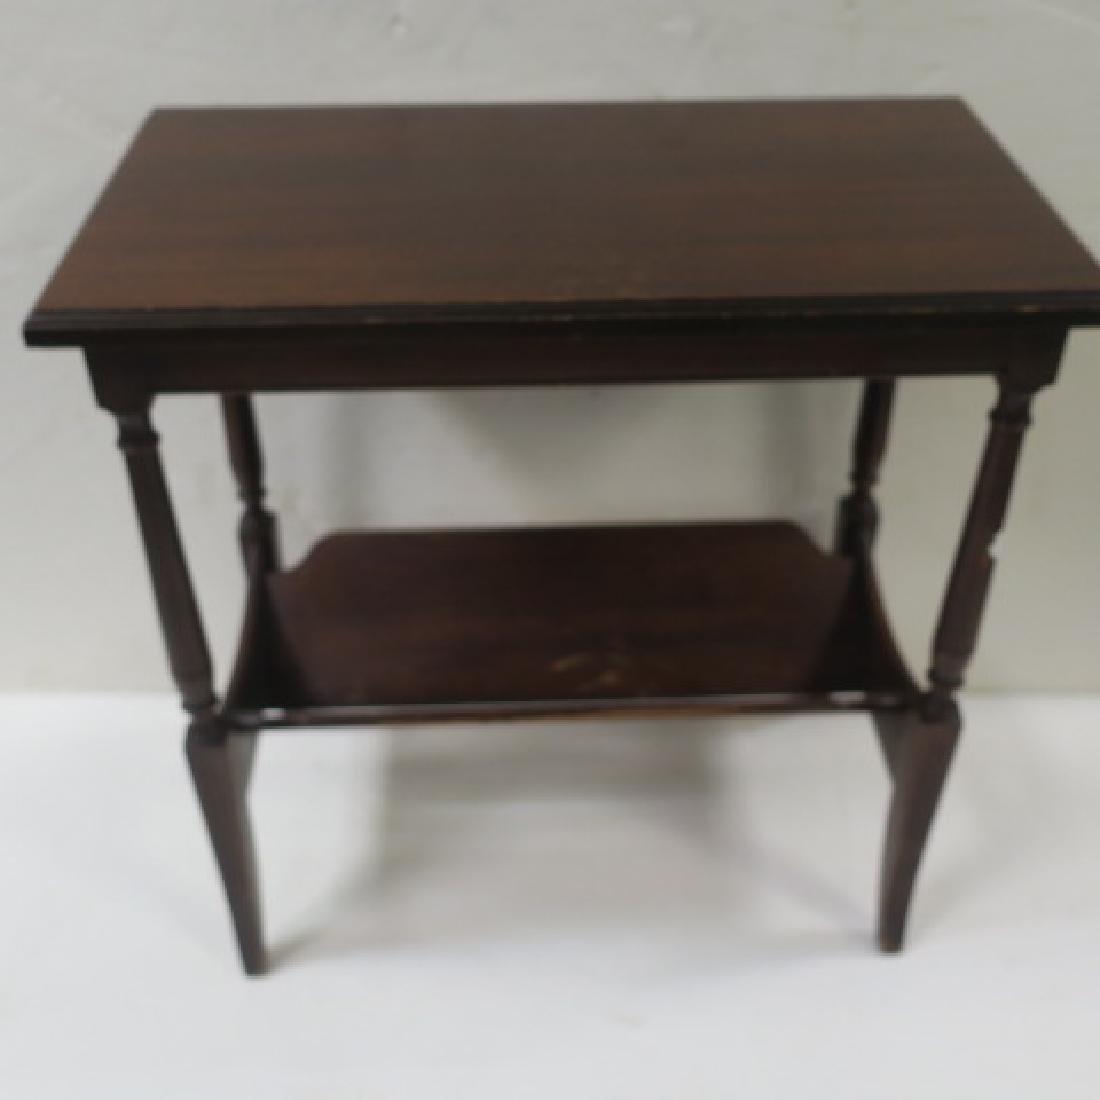 Mahogany Lamp Table with Book Trough: